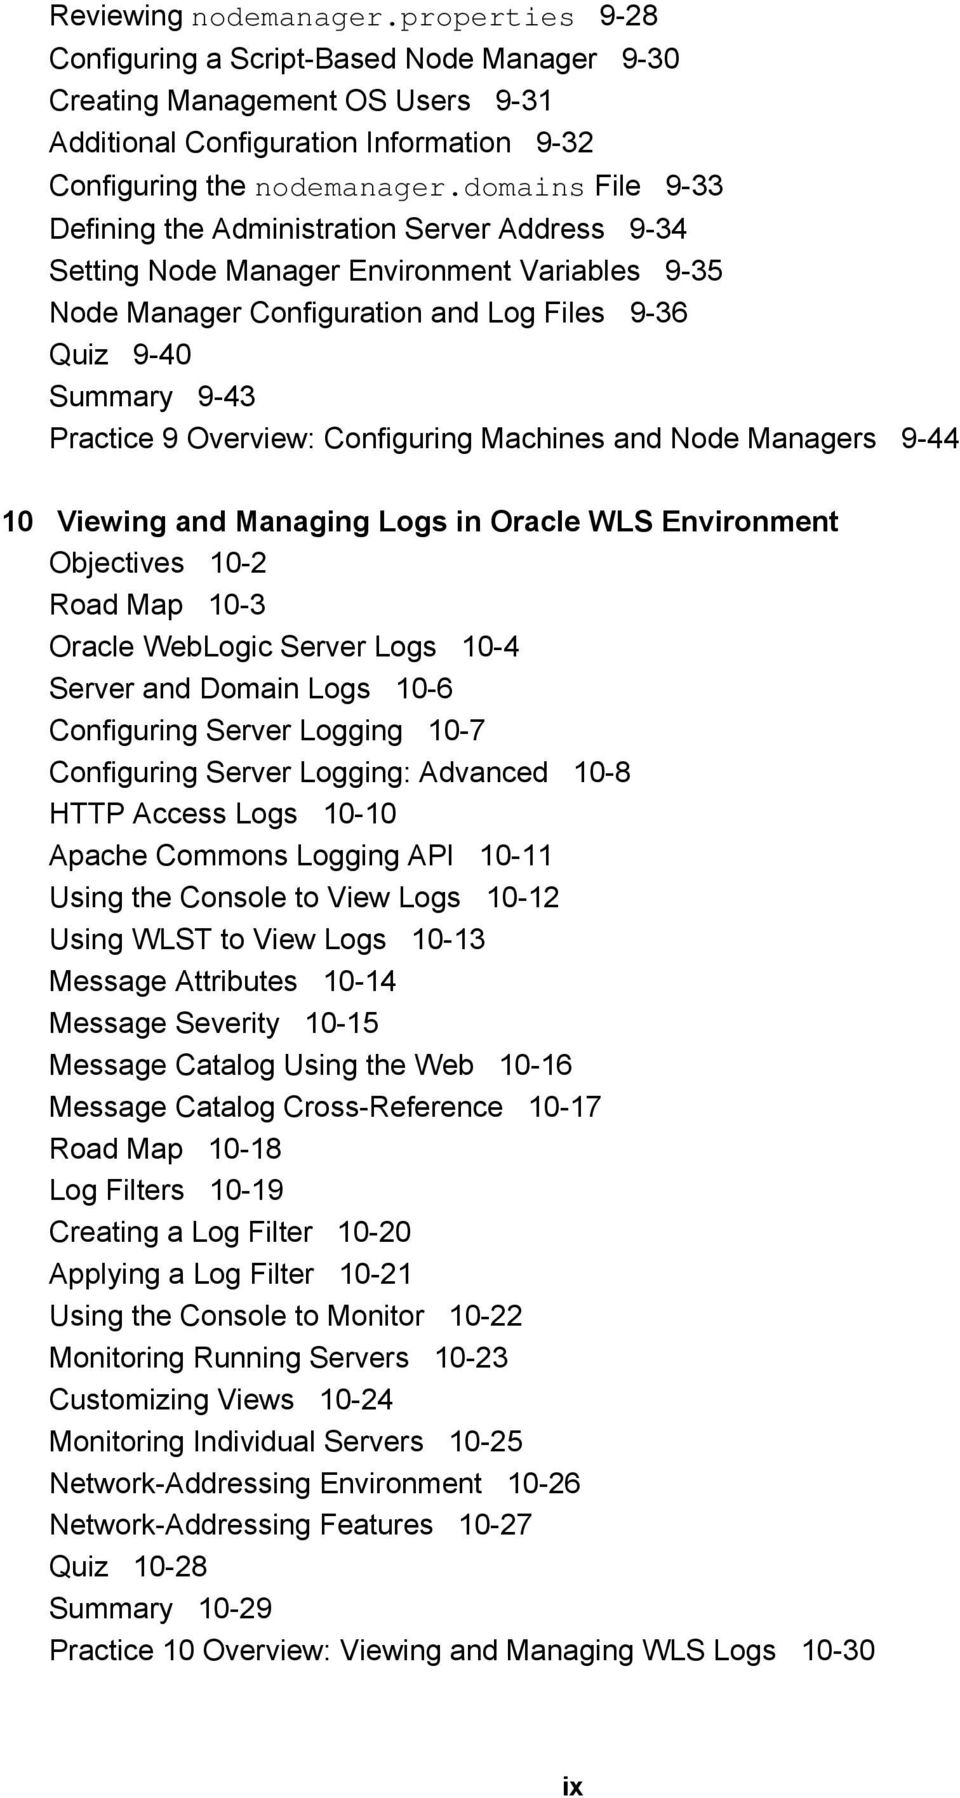 Overview: Configuring Machines and Node Managers 9-44 10 Viewing and Managing Logs in Oracle WLS Environment Objectives 10-2 Road Map 10-3 Oracle WebLogic Server Logs 10-4 Server and Domain Logs 10-6